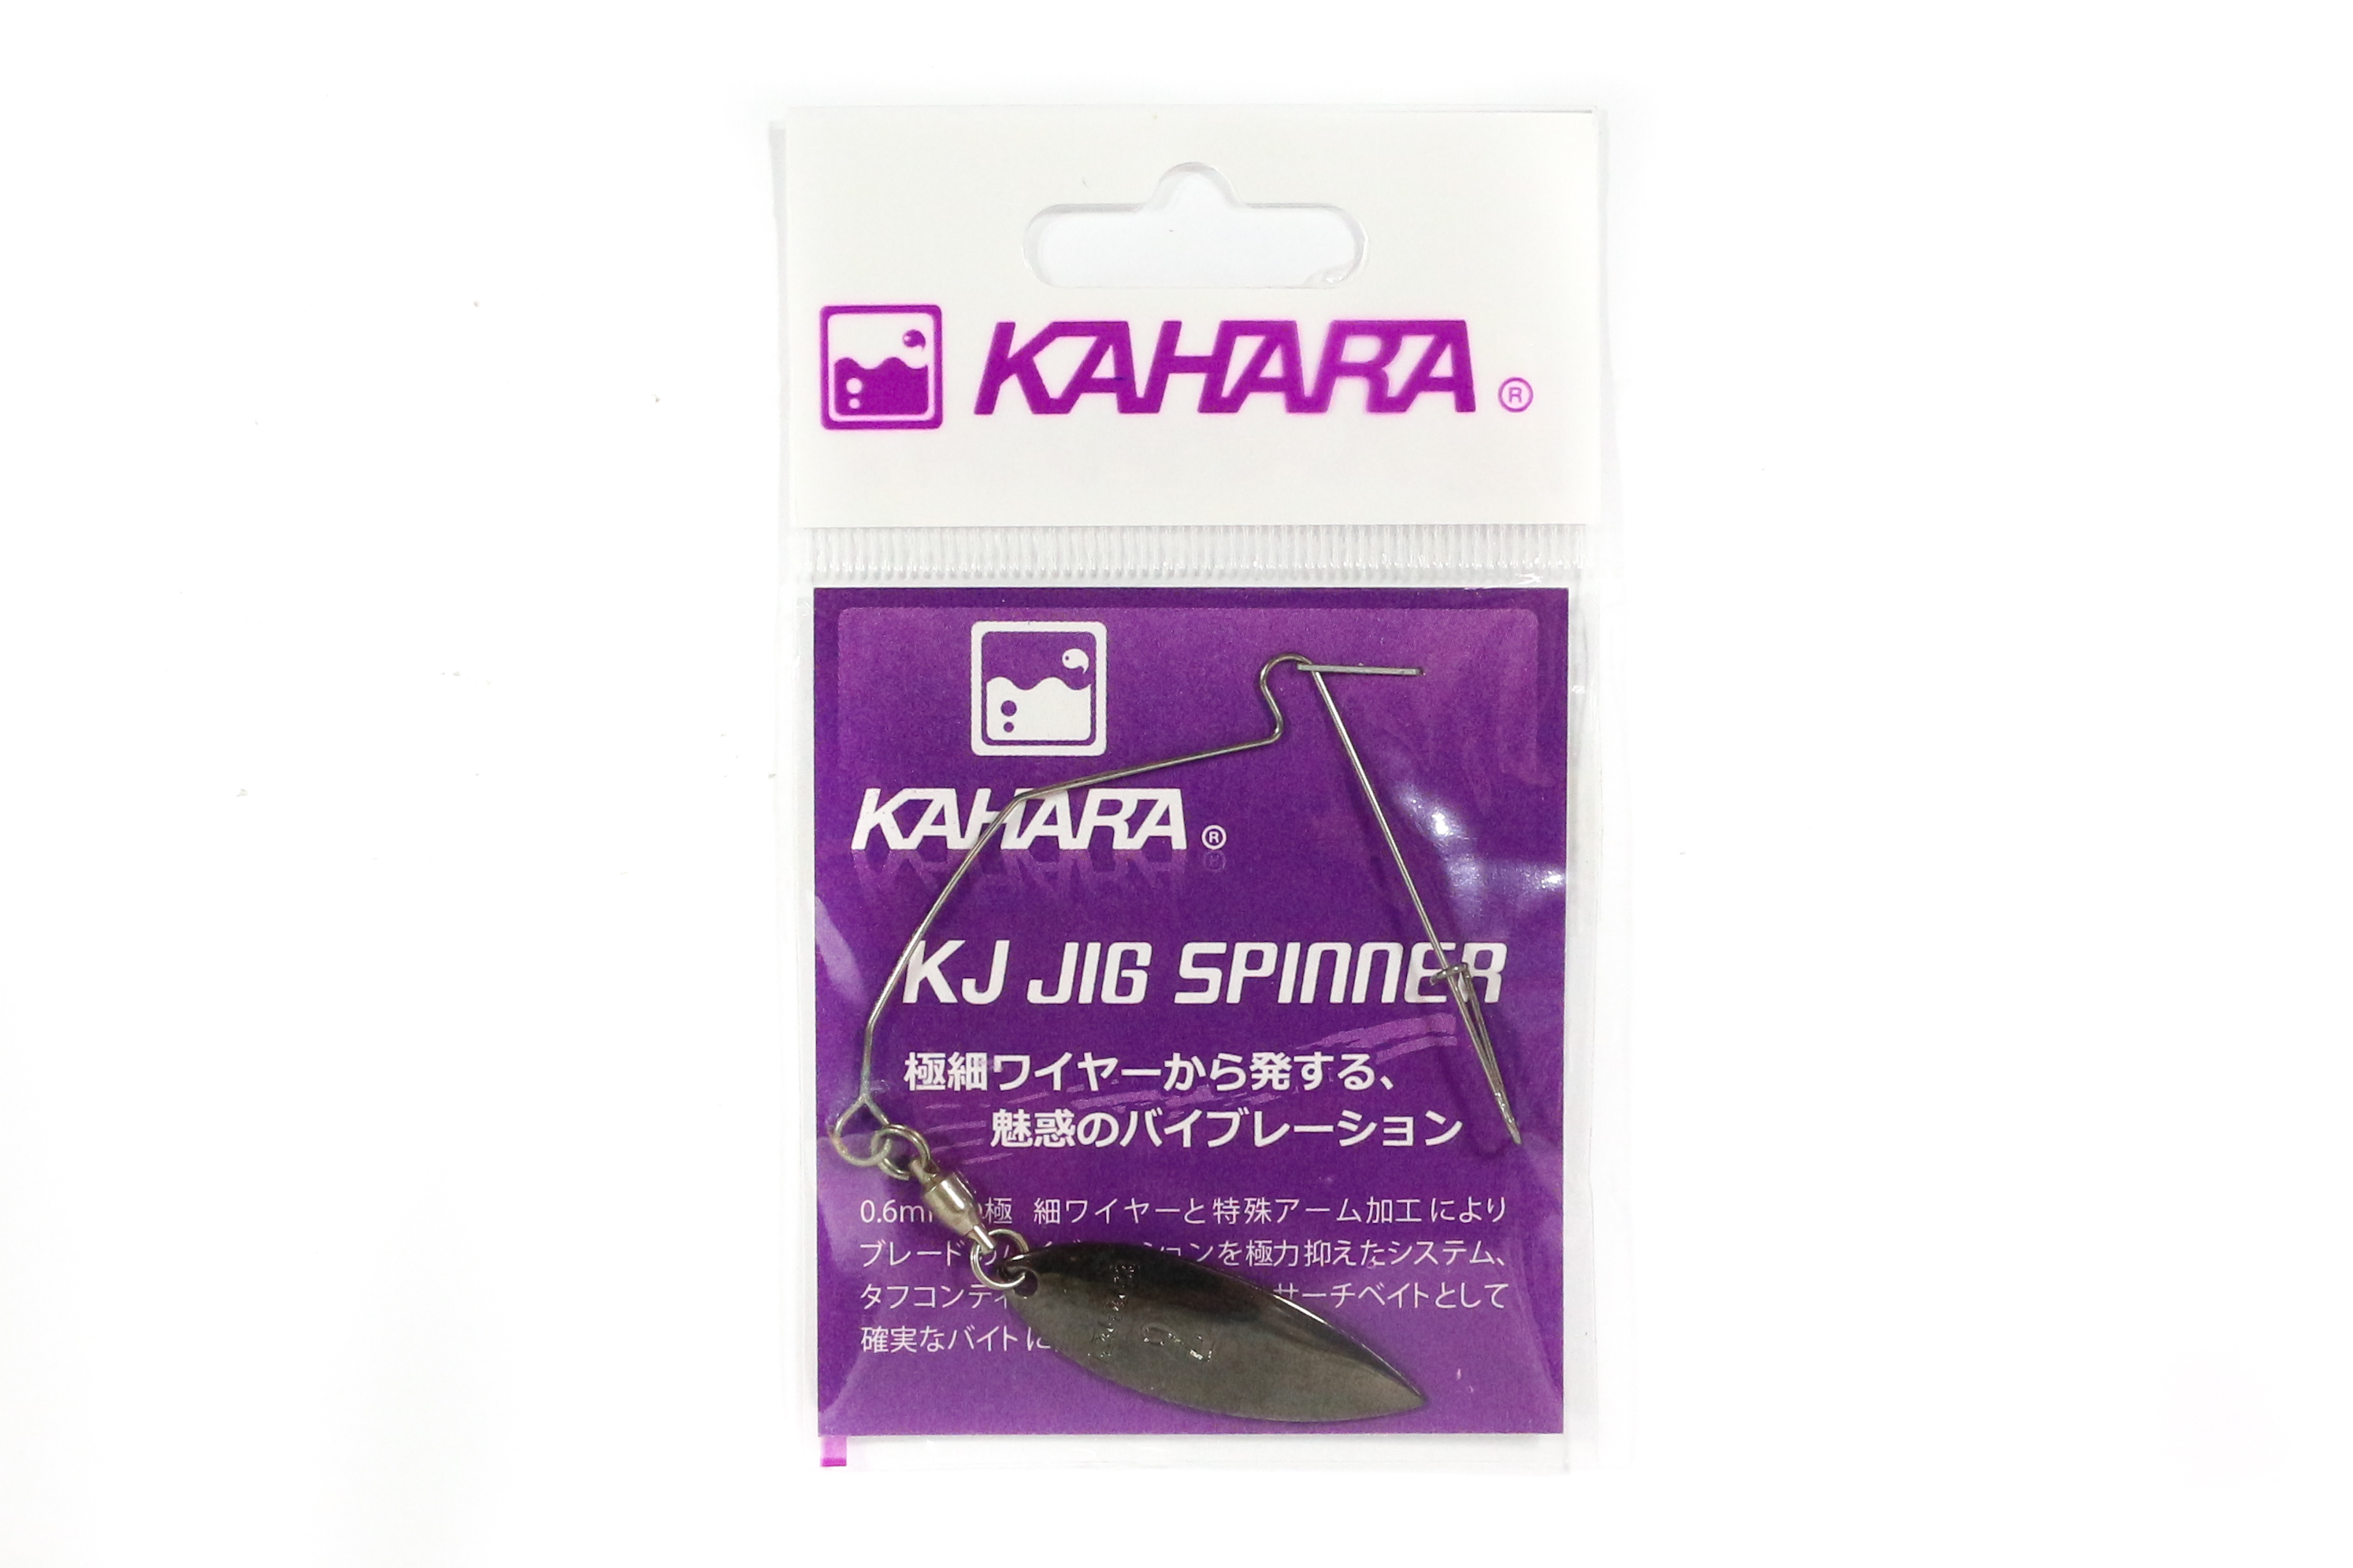 Kahara KJ Jig Spinner Wire Willow Blade Gun Metal Size 2 (1925)